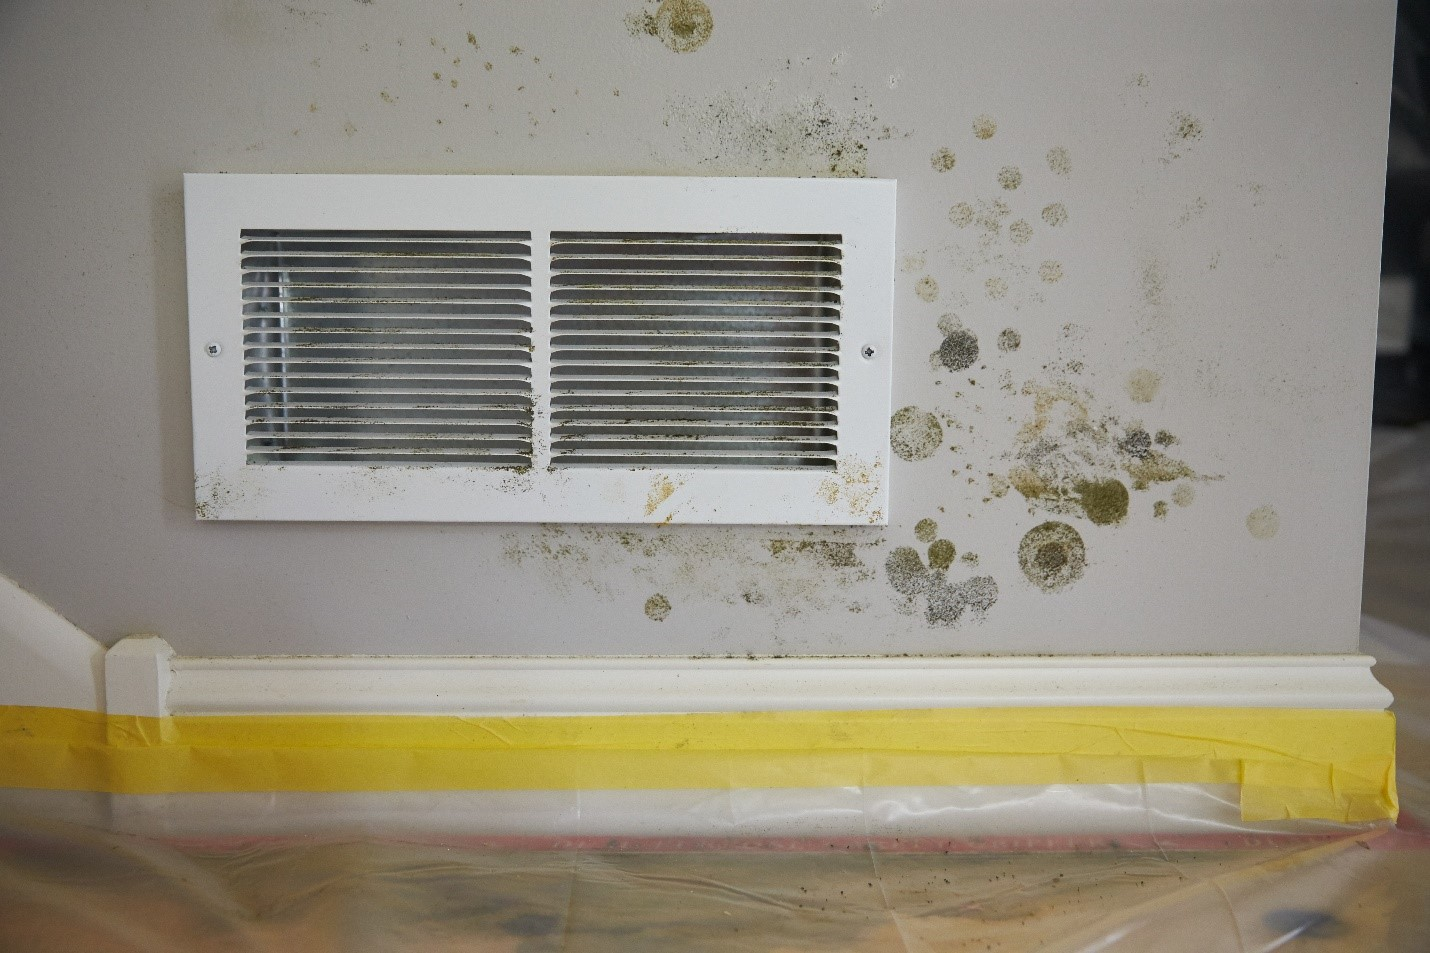 How Do You Deal With Indoor Air Pollution?